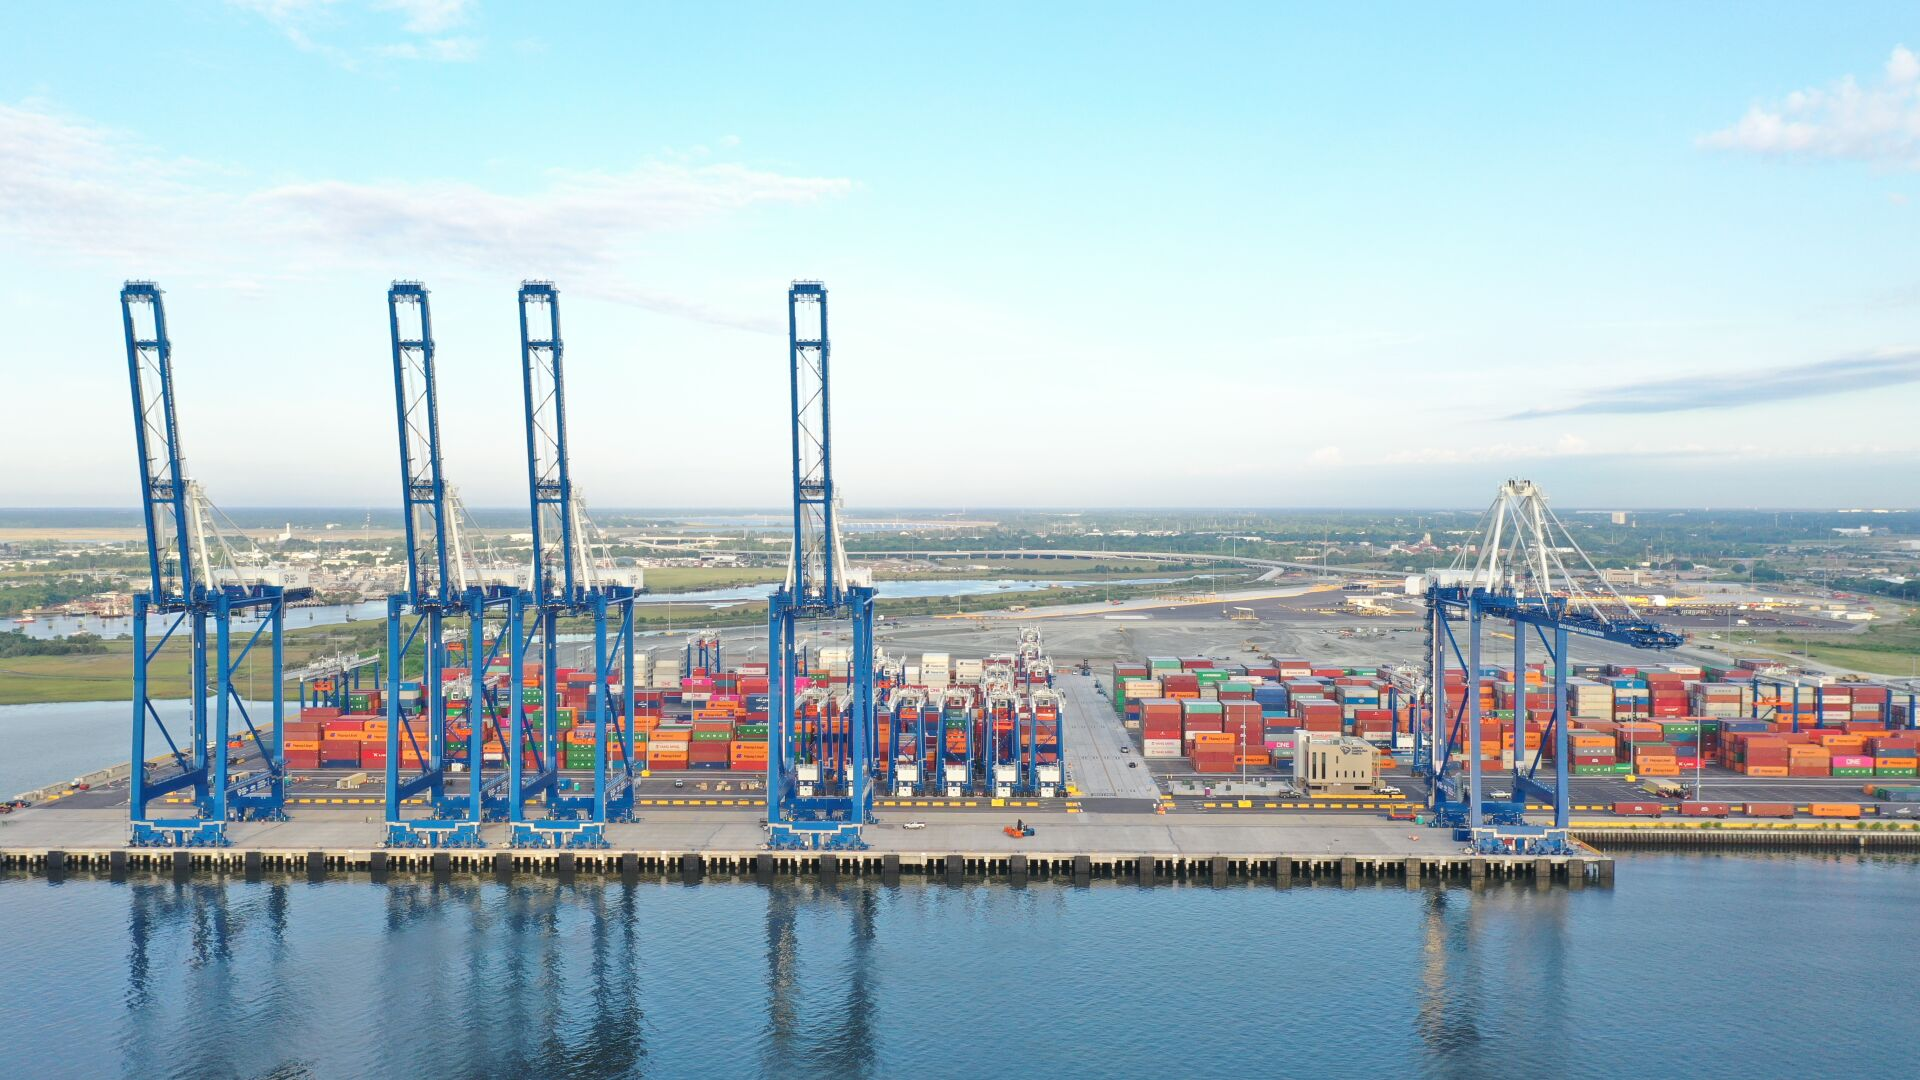 SC ports agency aims to lure ships back to new terminal after ruling